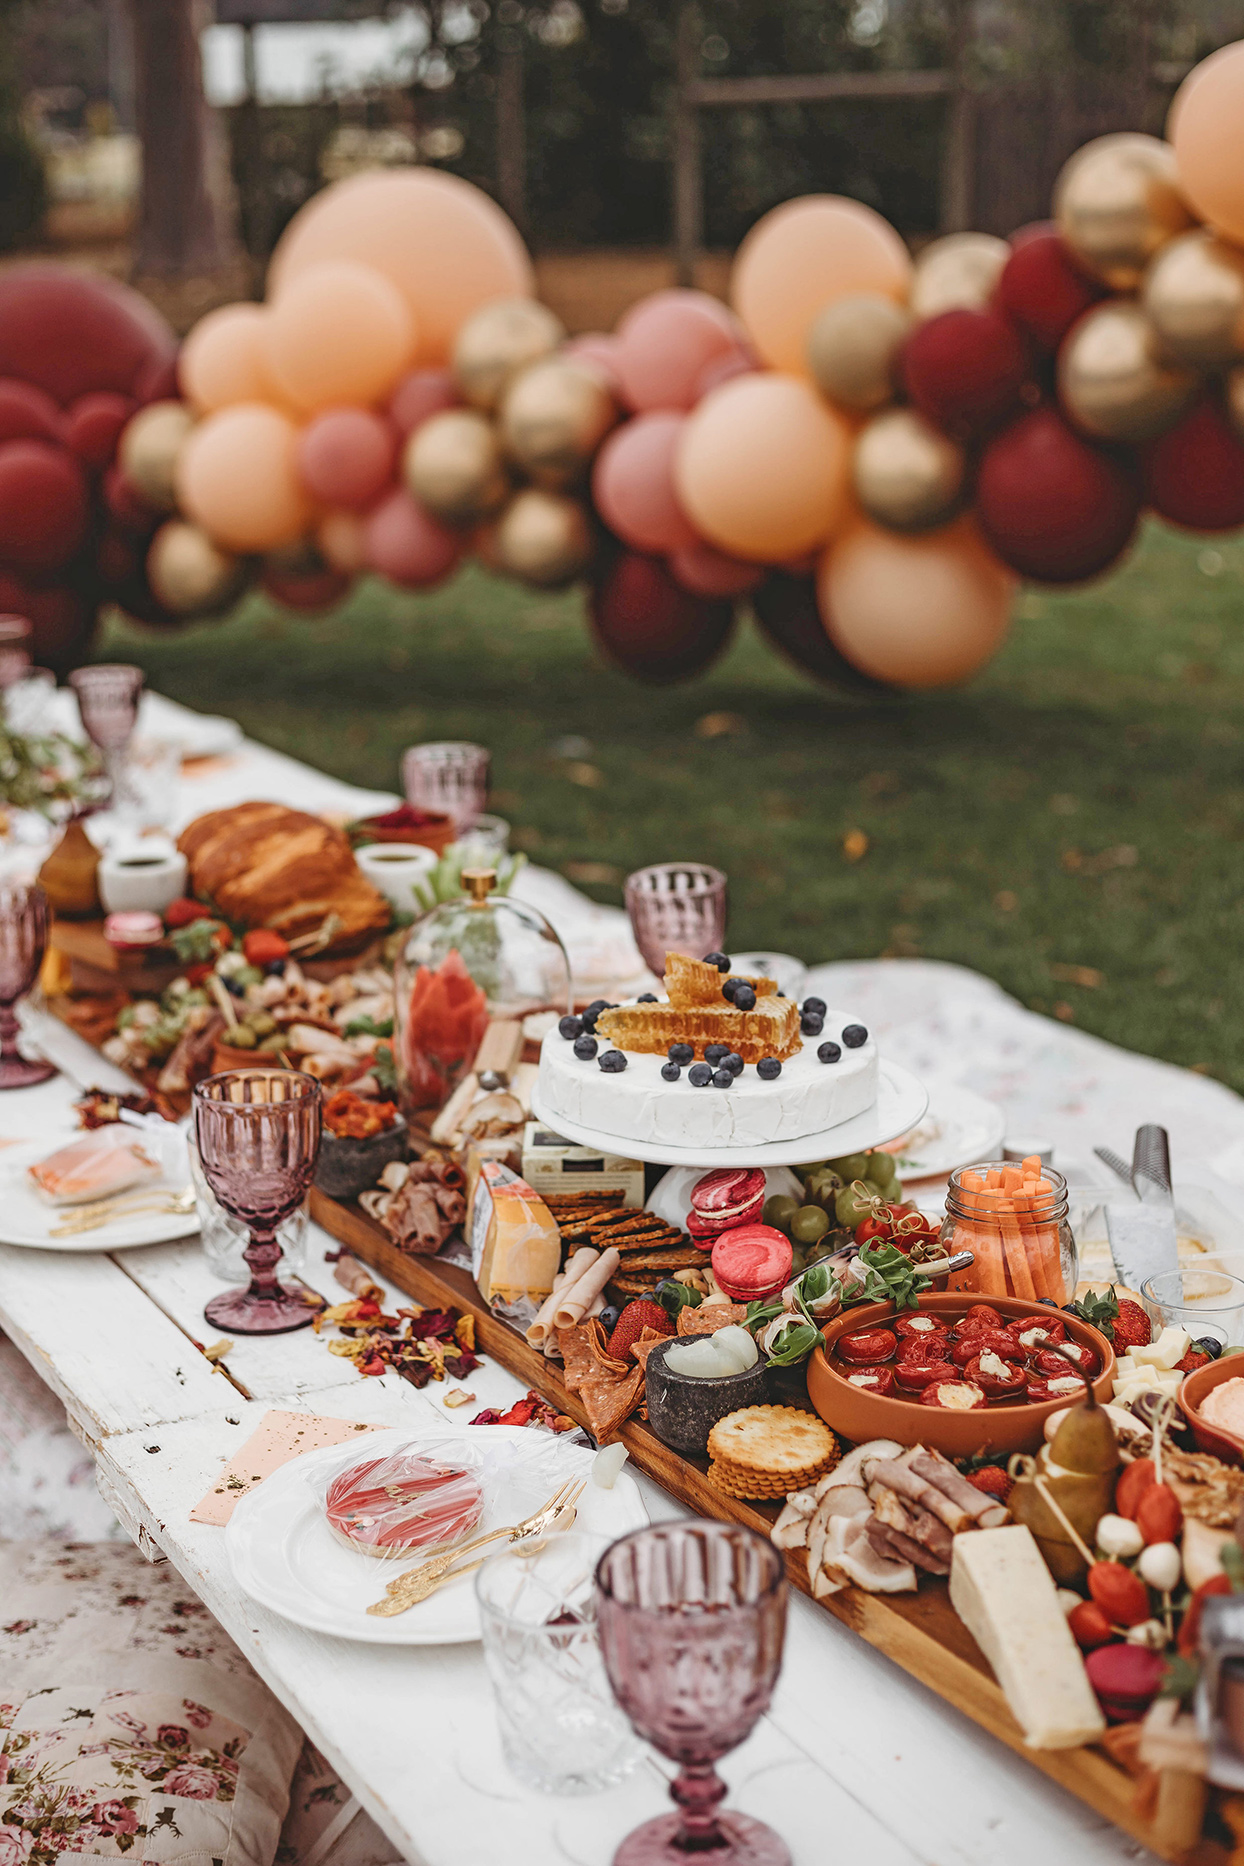 wedding grazing board in center of table